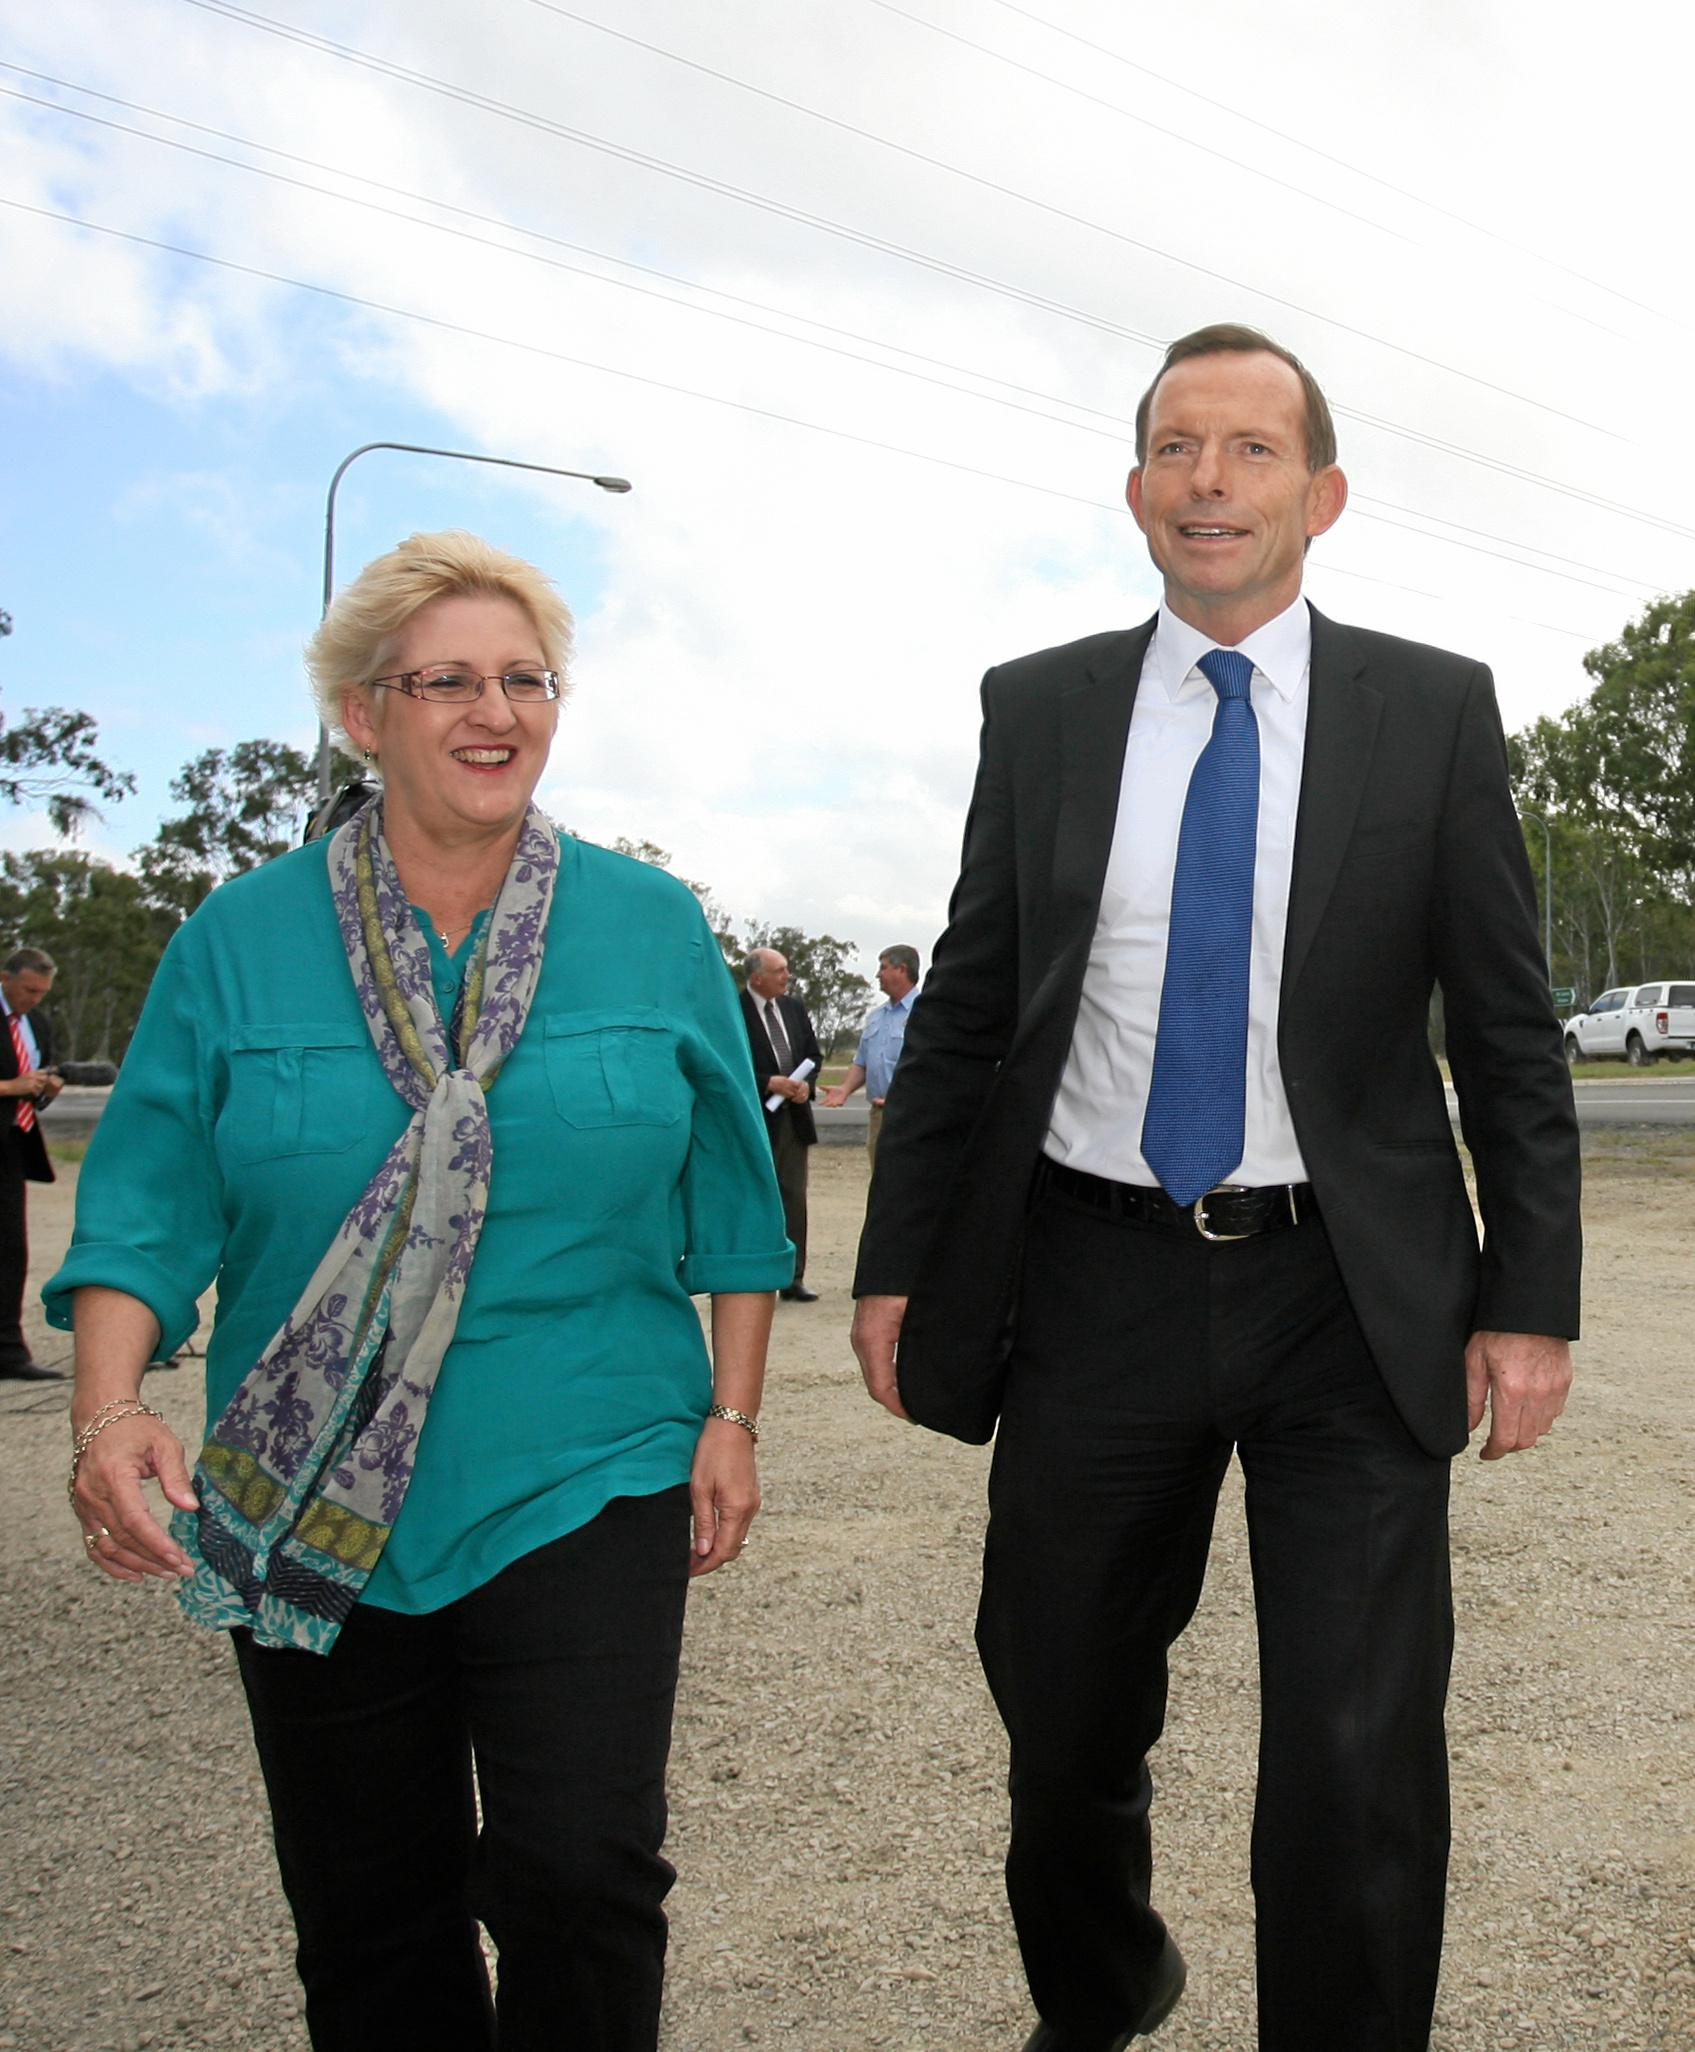 Local LNP candidate Michelle Landry and Opposition leader Tony Abbott in Rockhampton for an announcement on upgrading the Bruce Highway.   Photo: Chris Ison / The Morning Bulletin